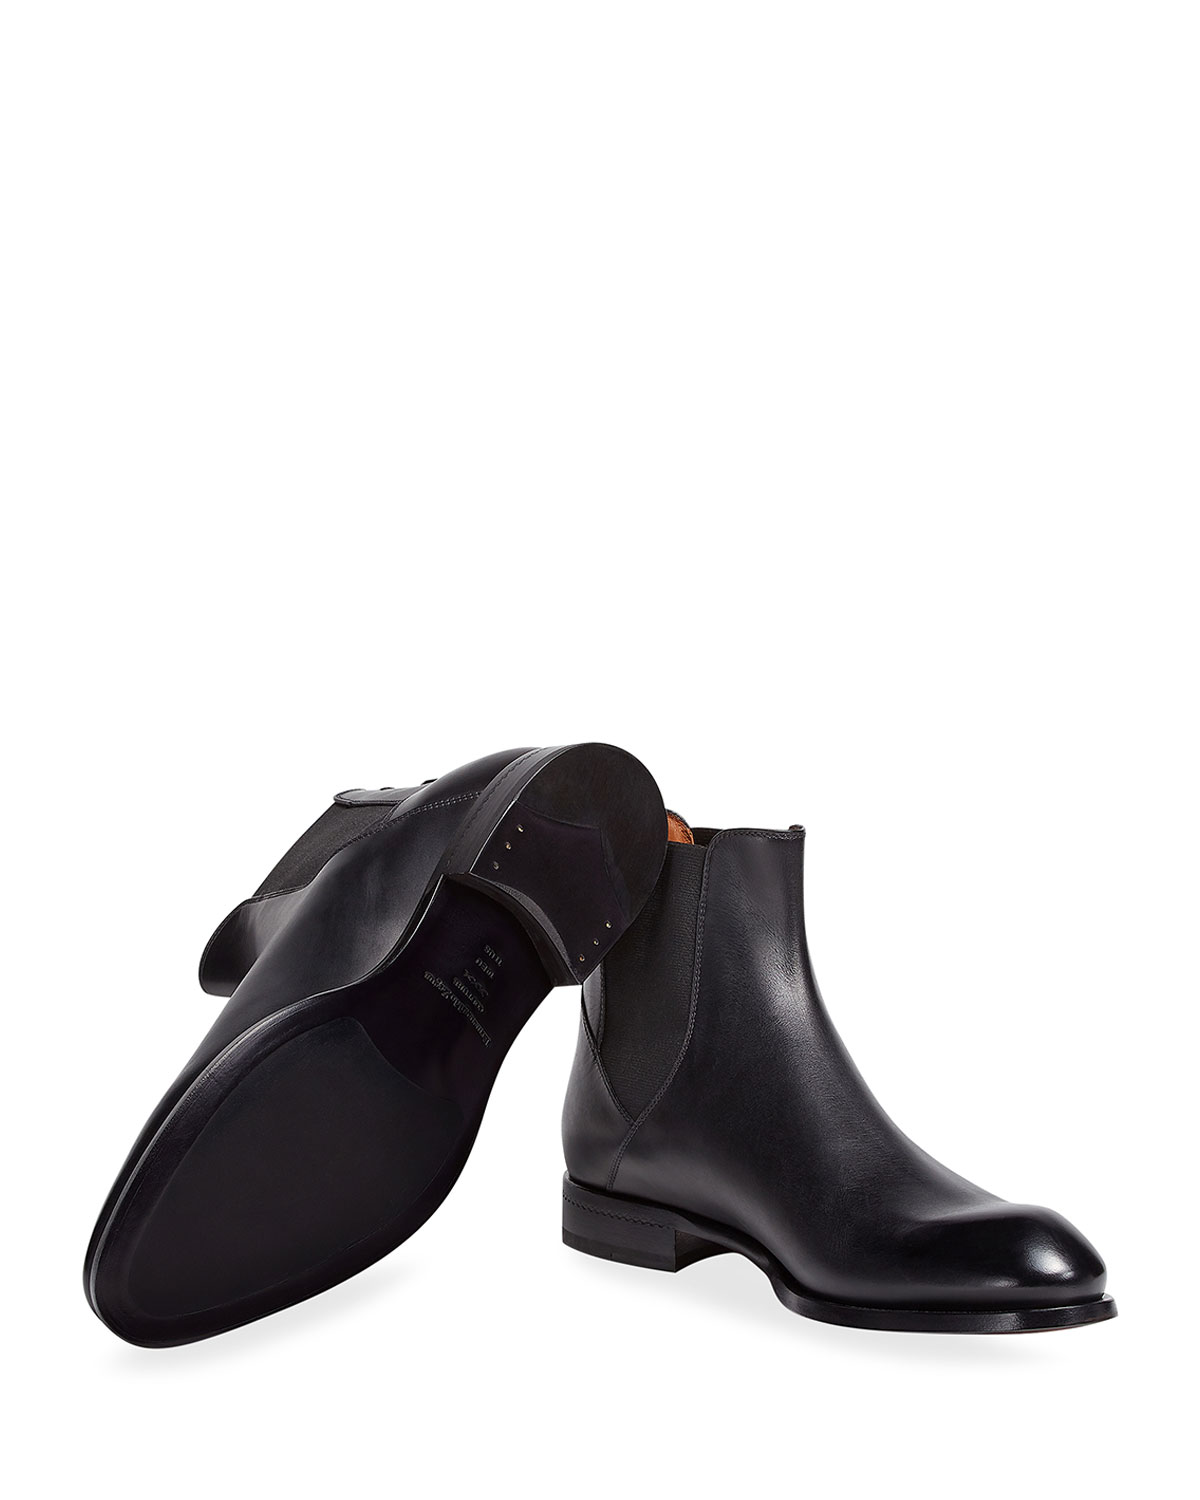 Ermenegildo Zegna Men's Vienna Solid Leather Chelsea Boots